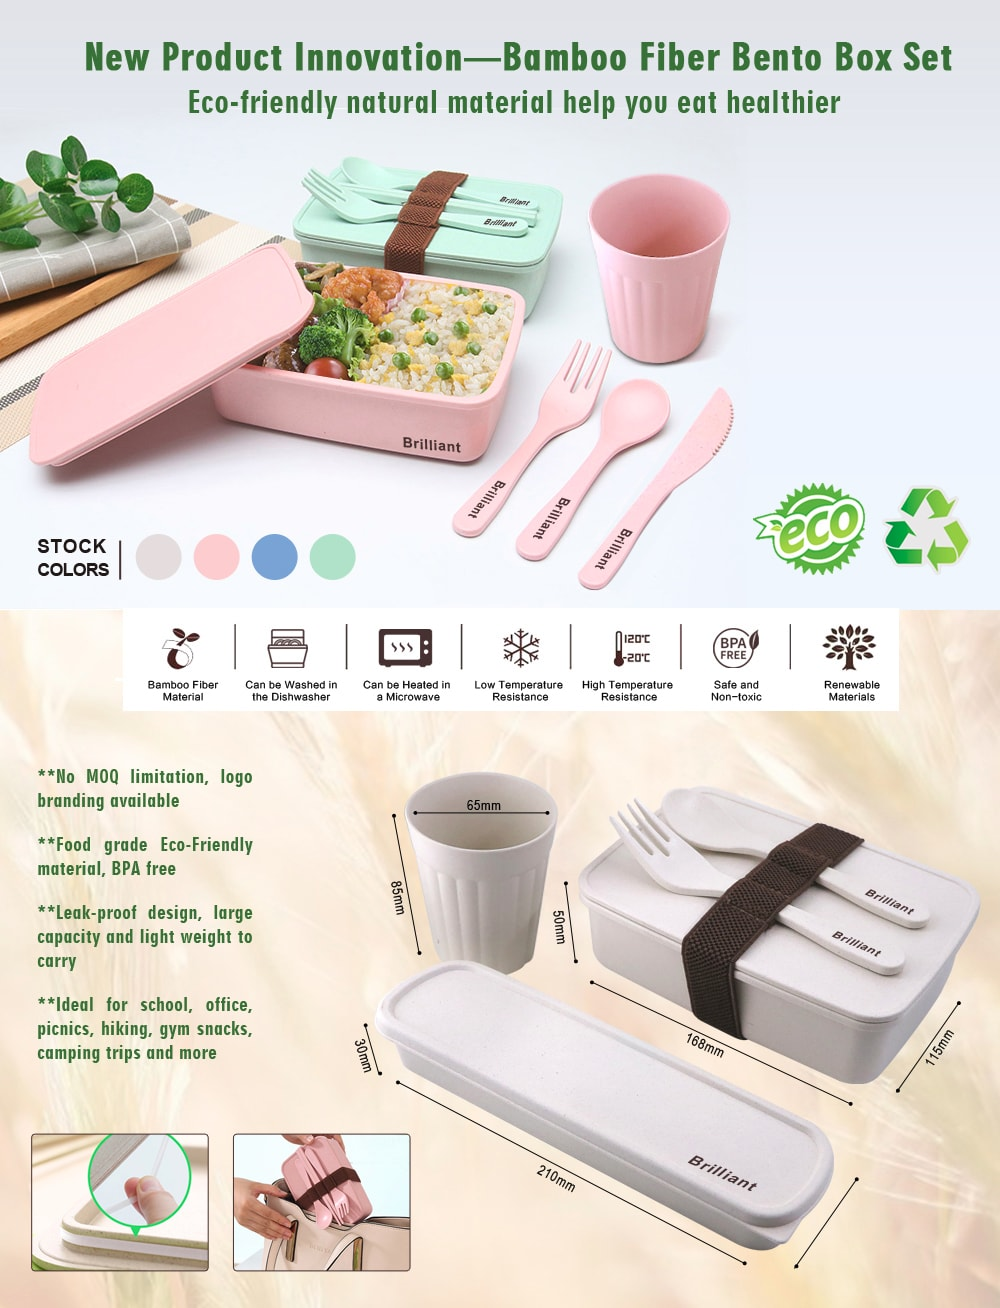 Bamboo Fiber Bento Box Set